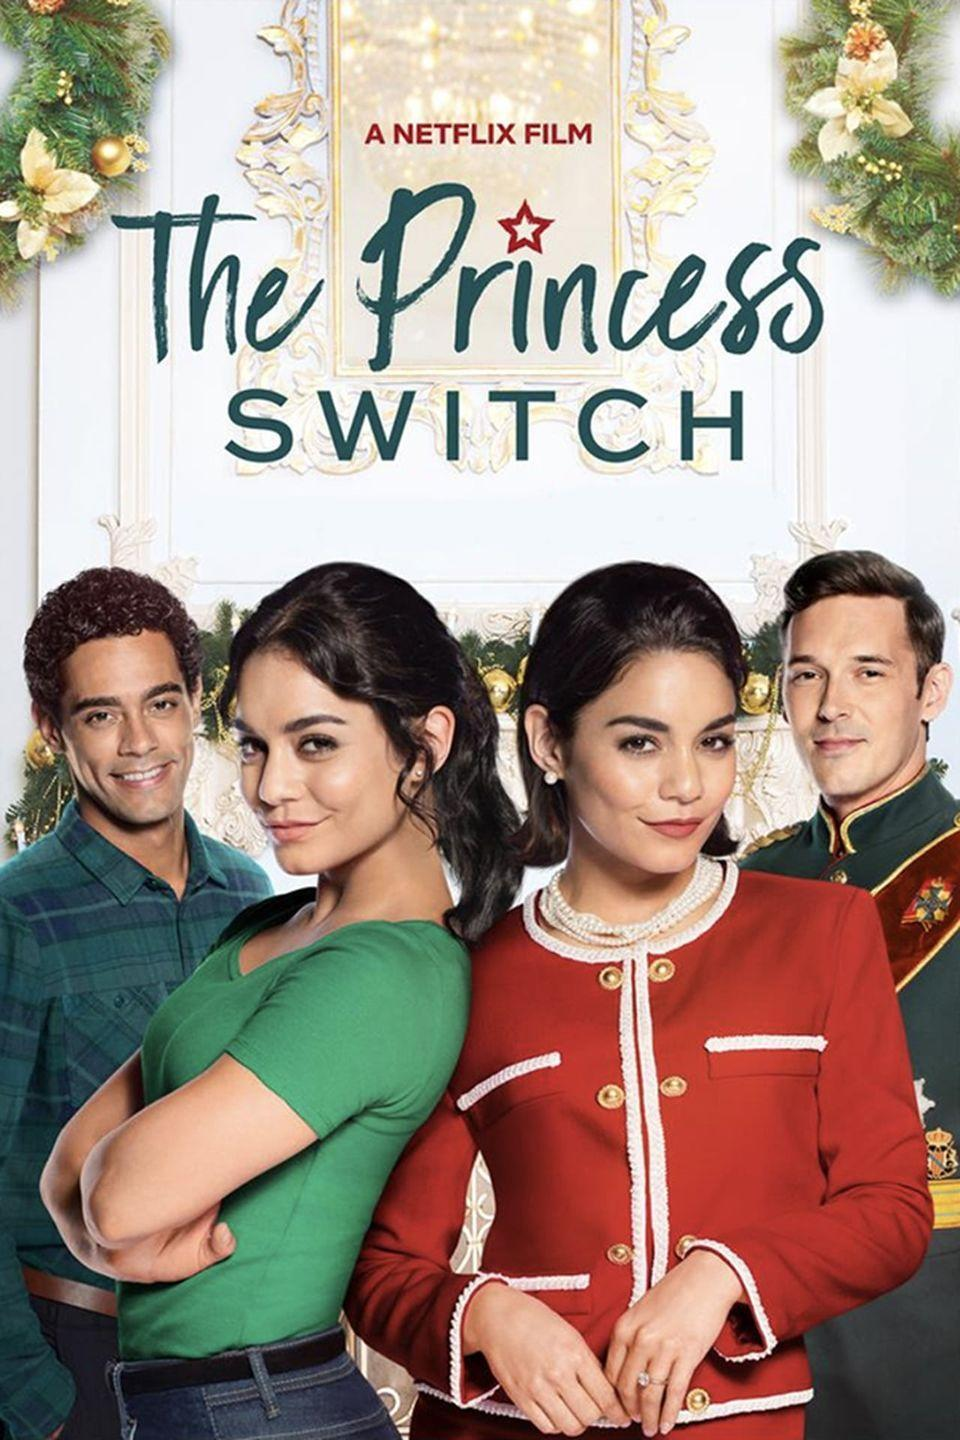 """<p>Before seeing the latest installment in this identity-swapping trilogy, why not take a watch down memory lane? In <em>The Princess Switch</em>, <a href=""""https://www.womenshealthmag.com/beauty/a34564334/vanessa-hudgens-skincare-routine/"""" rel=""""nofollow noopener"""" target=""""_blank"""" data-ylk=""""slk:Vanessa Hudgens"""" class=""""link rapid-noclick-resp"""">Vanessa Hudgens</a> plays a single American baker who enters a baking competition in Belgravia. While she's there, she meets a woman who looks <em>just</em> like her and is engaged to a prince. The two switch lives for a bit and—surprise, surprise—romantic entanglements ensue.</p><p><a class=""""link rapid-noclick-resp"""" href=""""https://www.netflix.com/title/80242926"""" rel=""""nofollow noopener"""" target=""""_blank"""" data-ylk=""""slk:Watch Now"""">Watch Now</a></p>"""